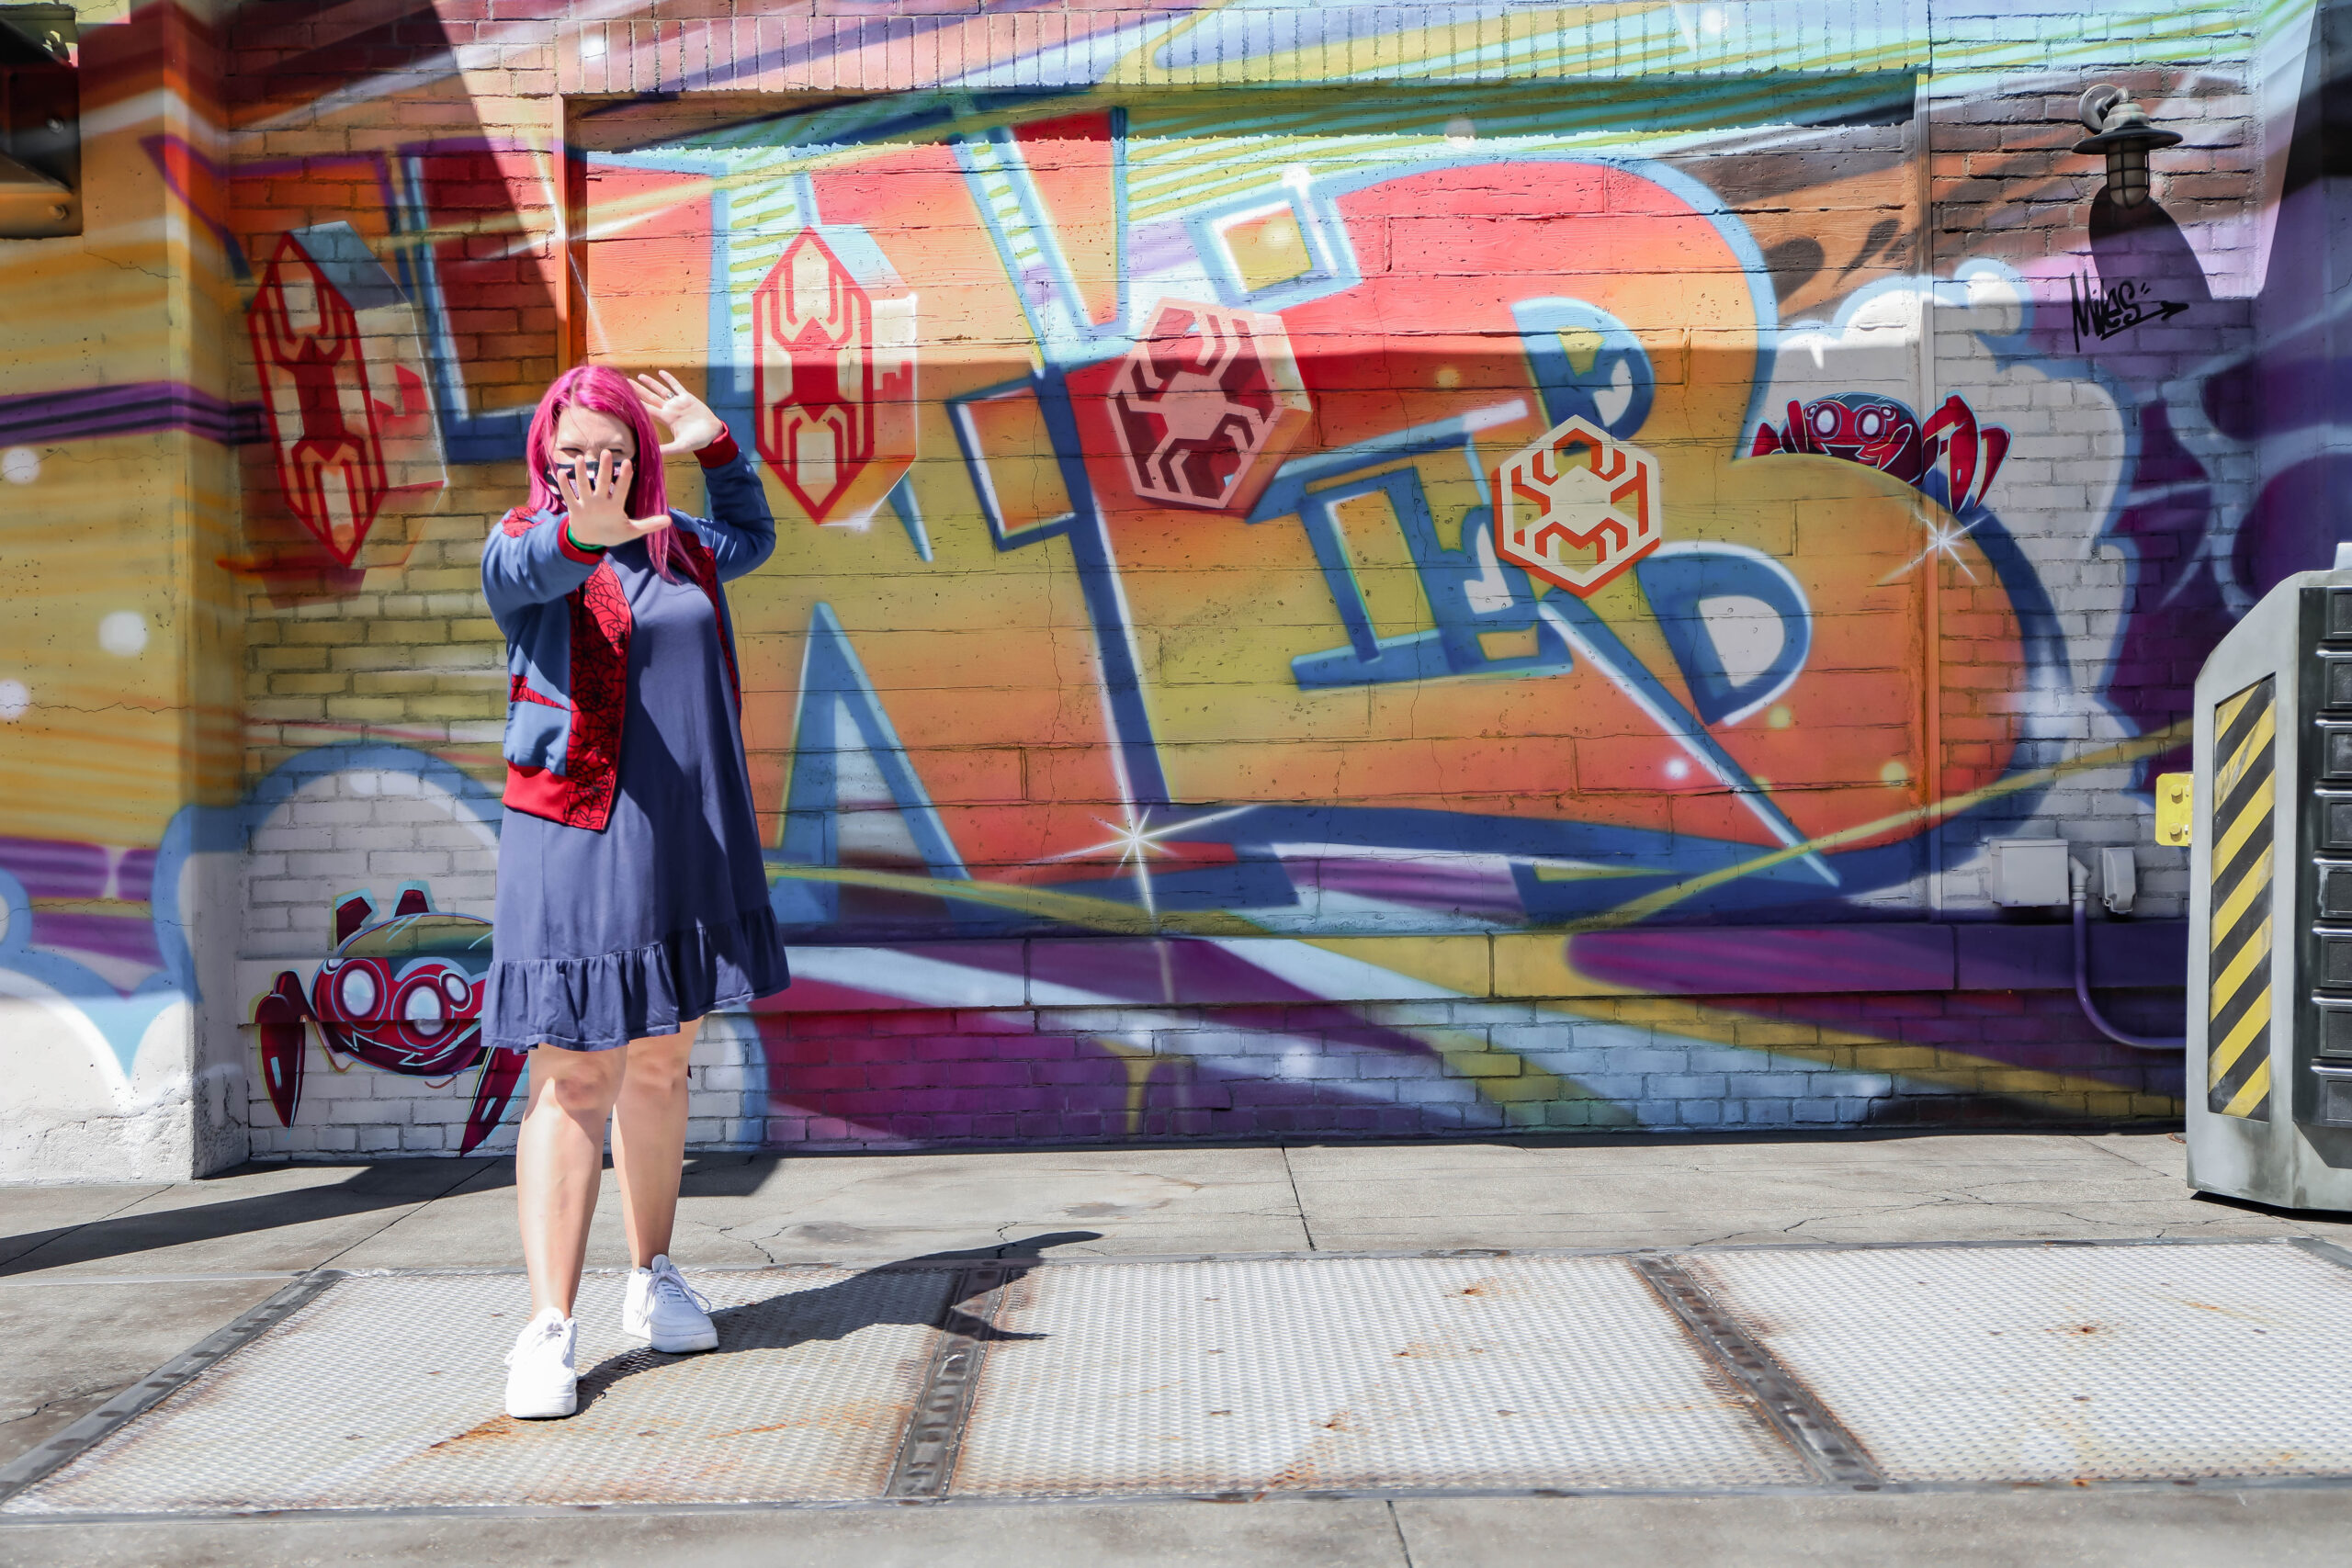 Looking for the best Disneyland Outfits to wear inside Avengers Campus? This is for YOU!